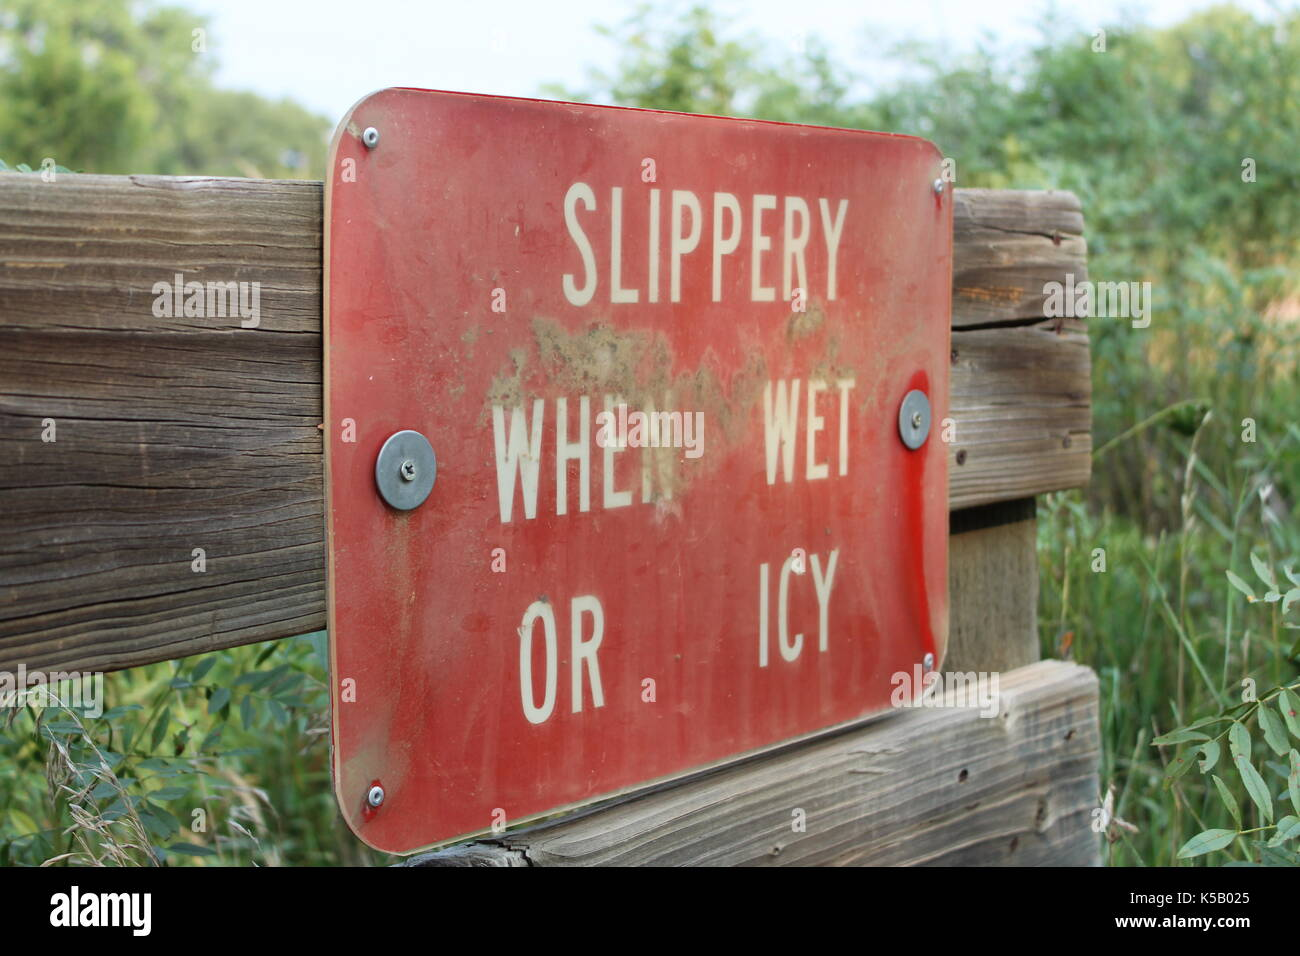 Slippery when wet or icy sign on bridge along walking trail in Fountain Creek Regional Park, Fountain, Colorado - Stock Image